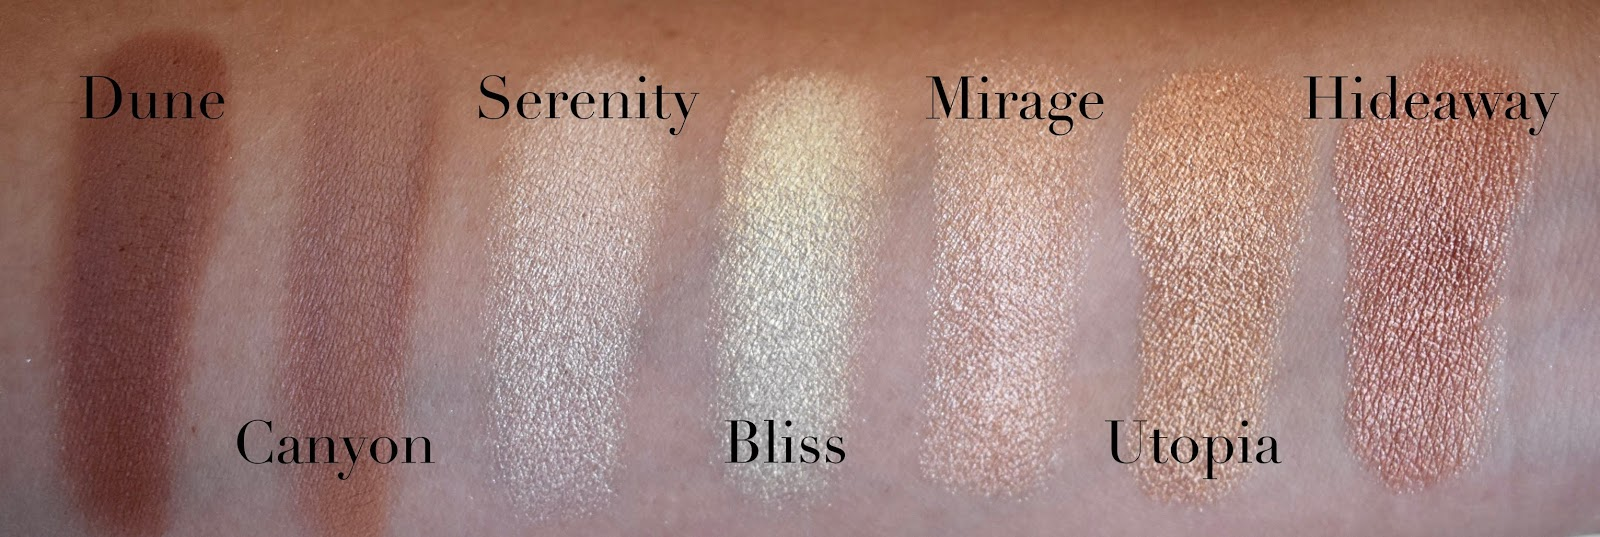 Desert Oasis 19 Color Shadow Highlighter Palette by BH Cosmetics #13